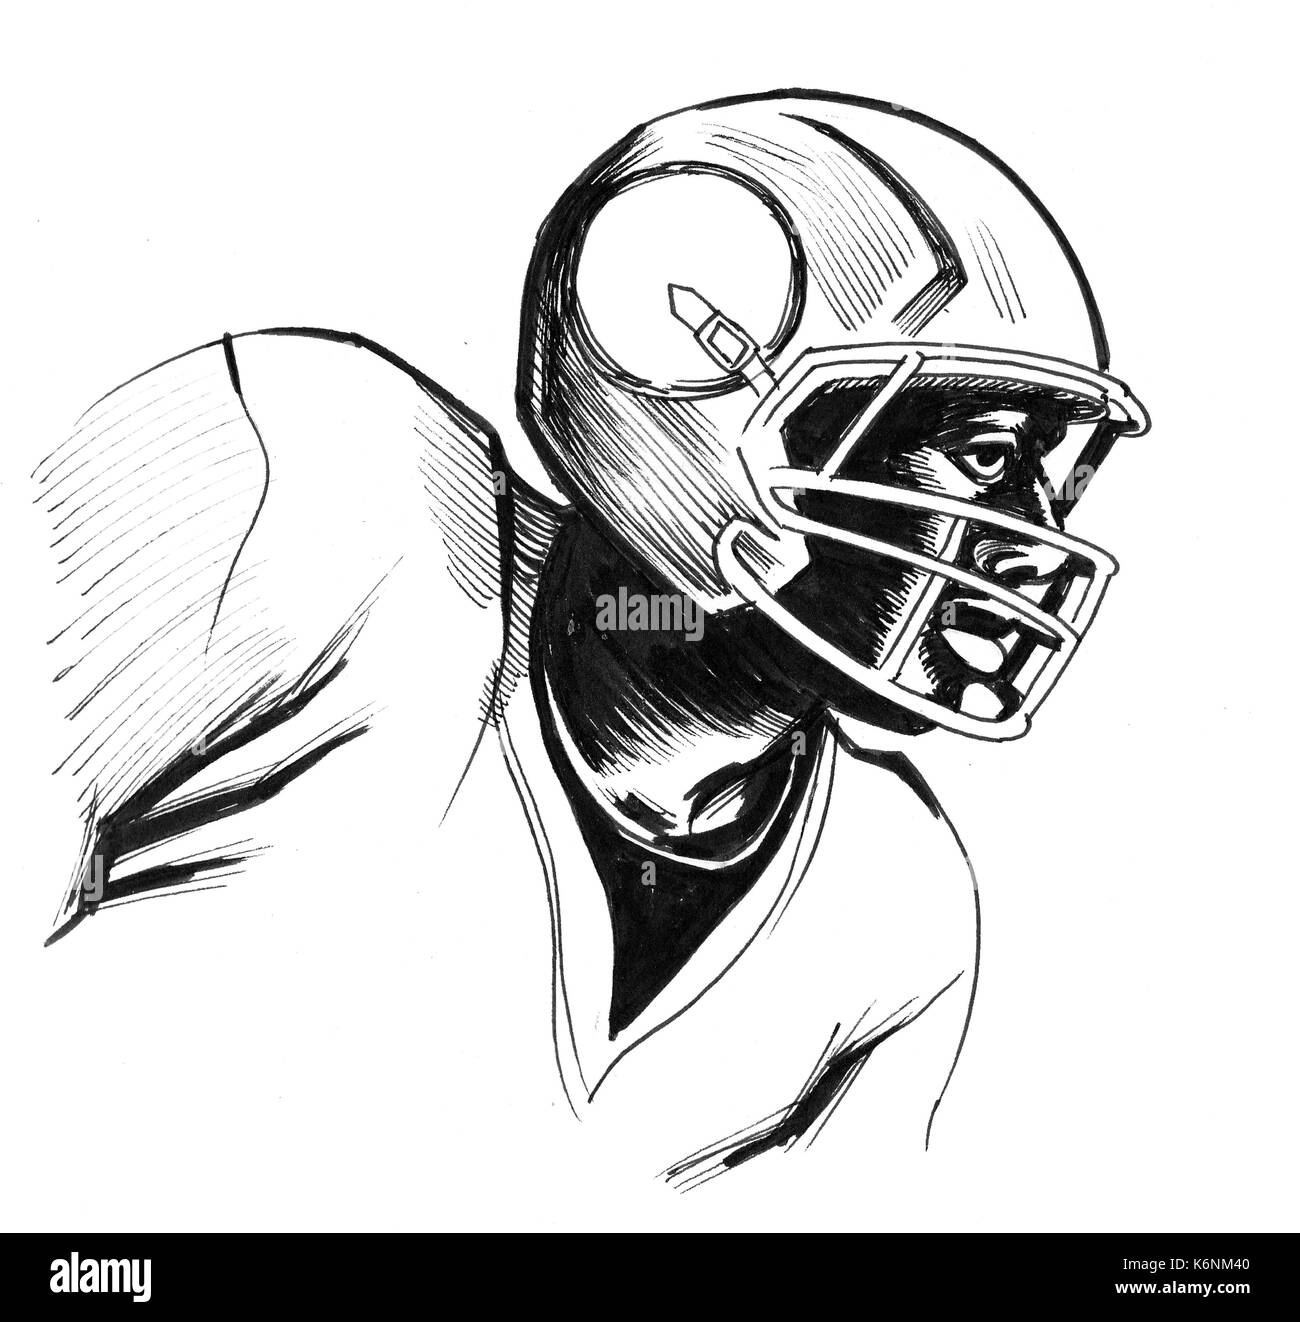 American football player stock image